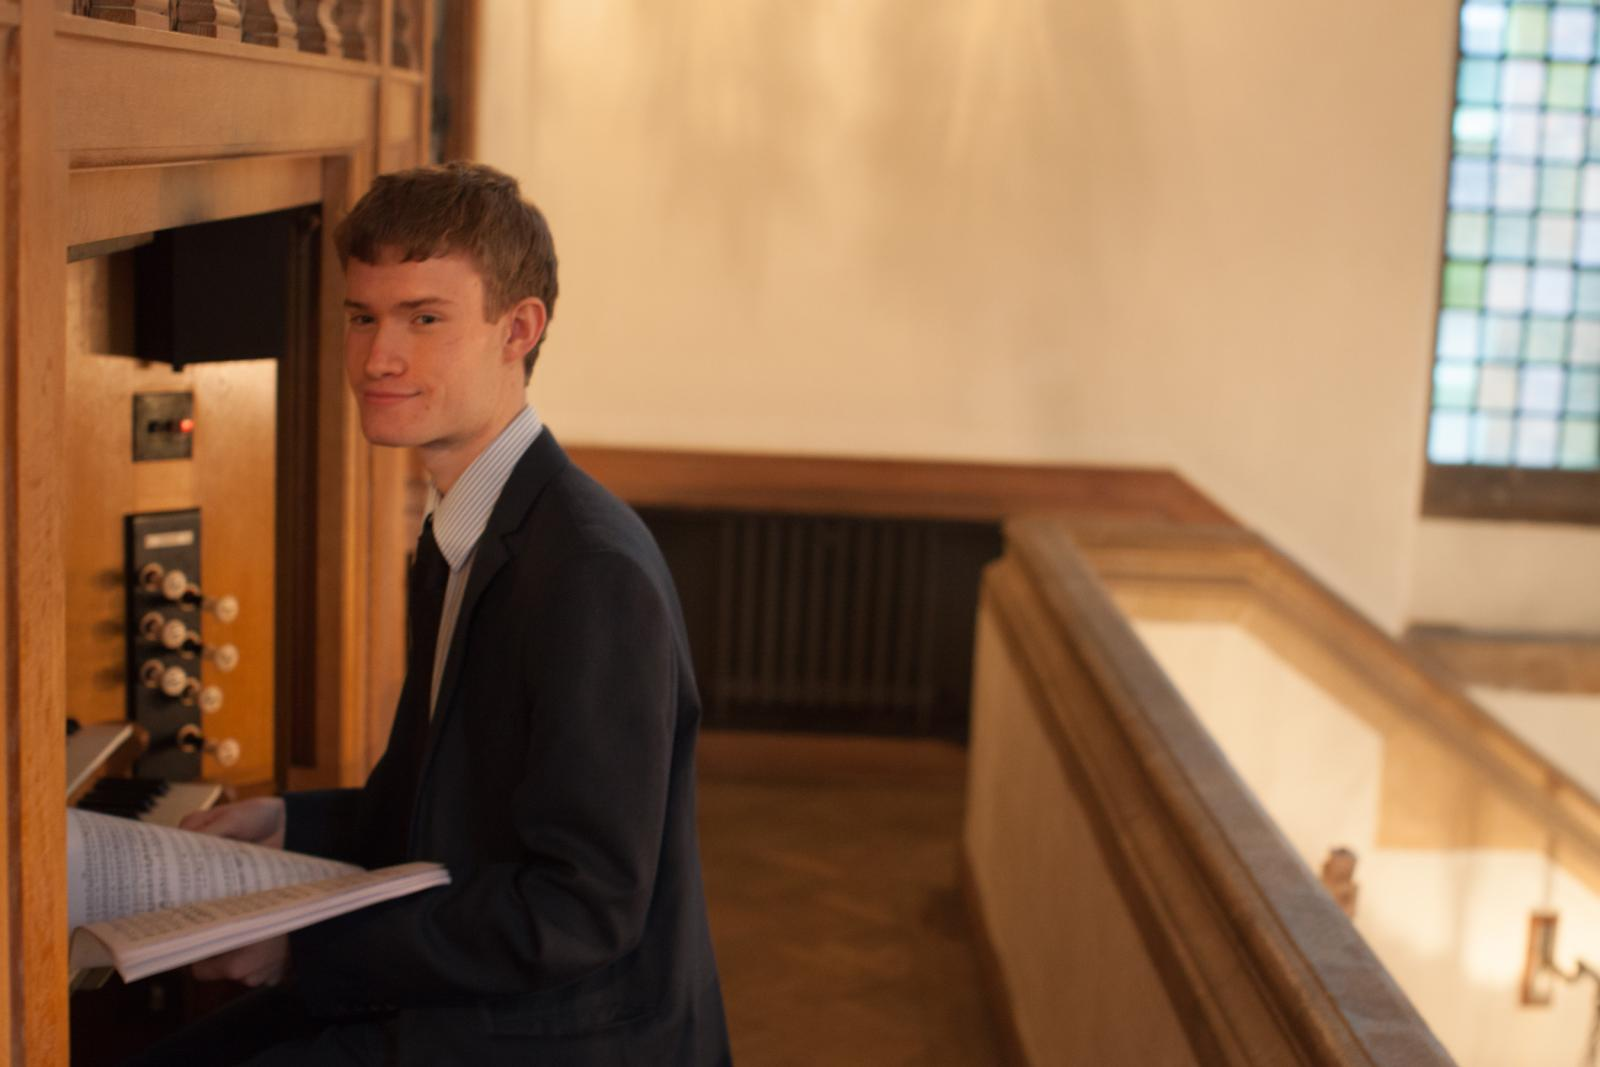 LMH Organ Scholar Guy Steed